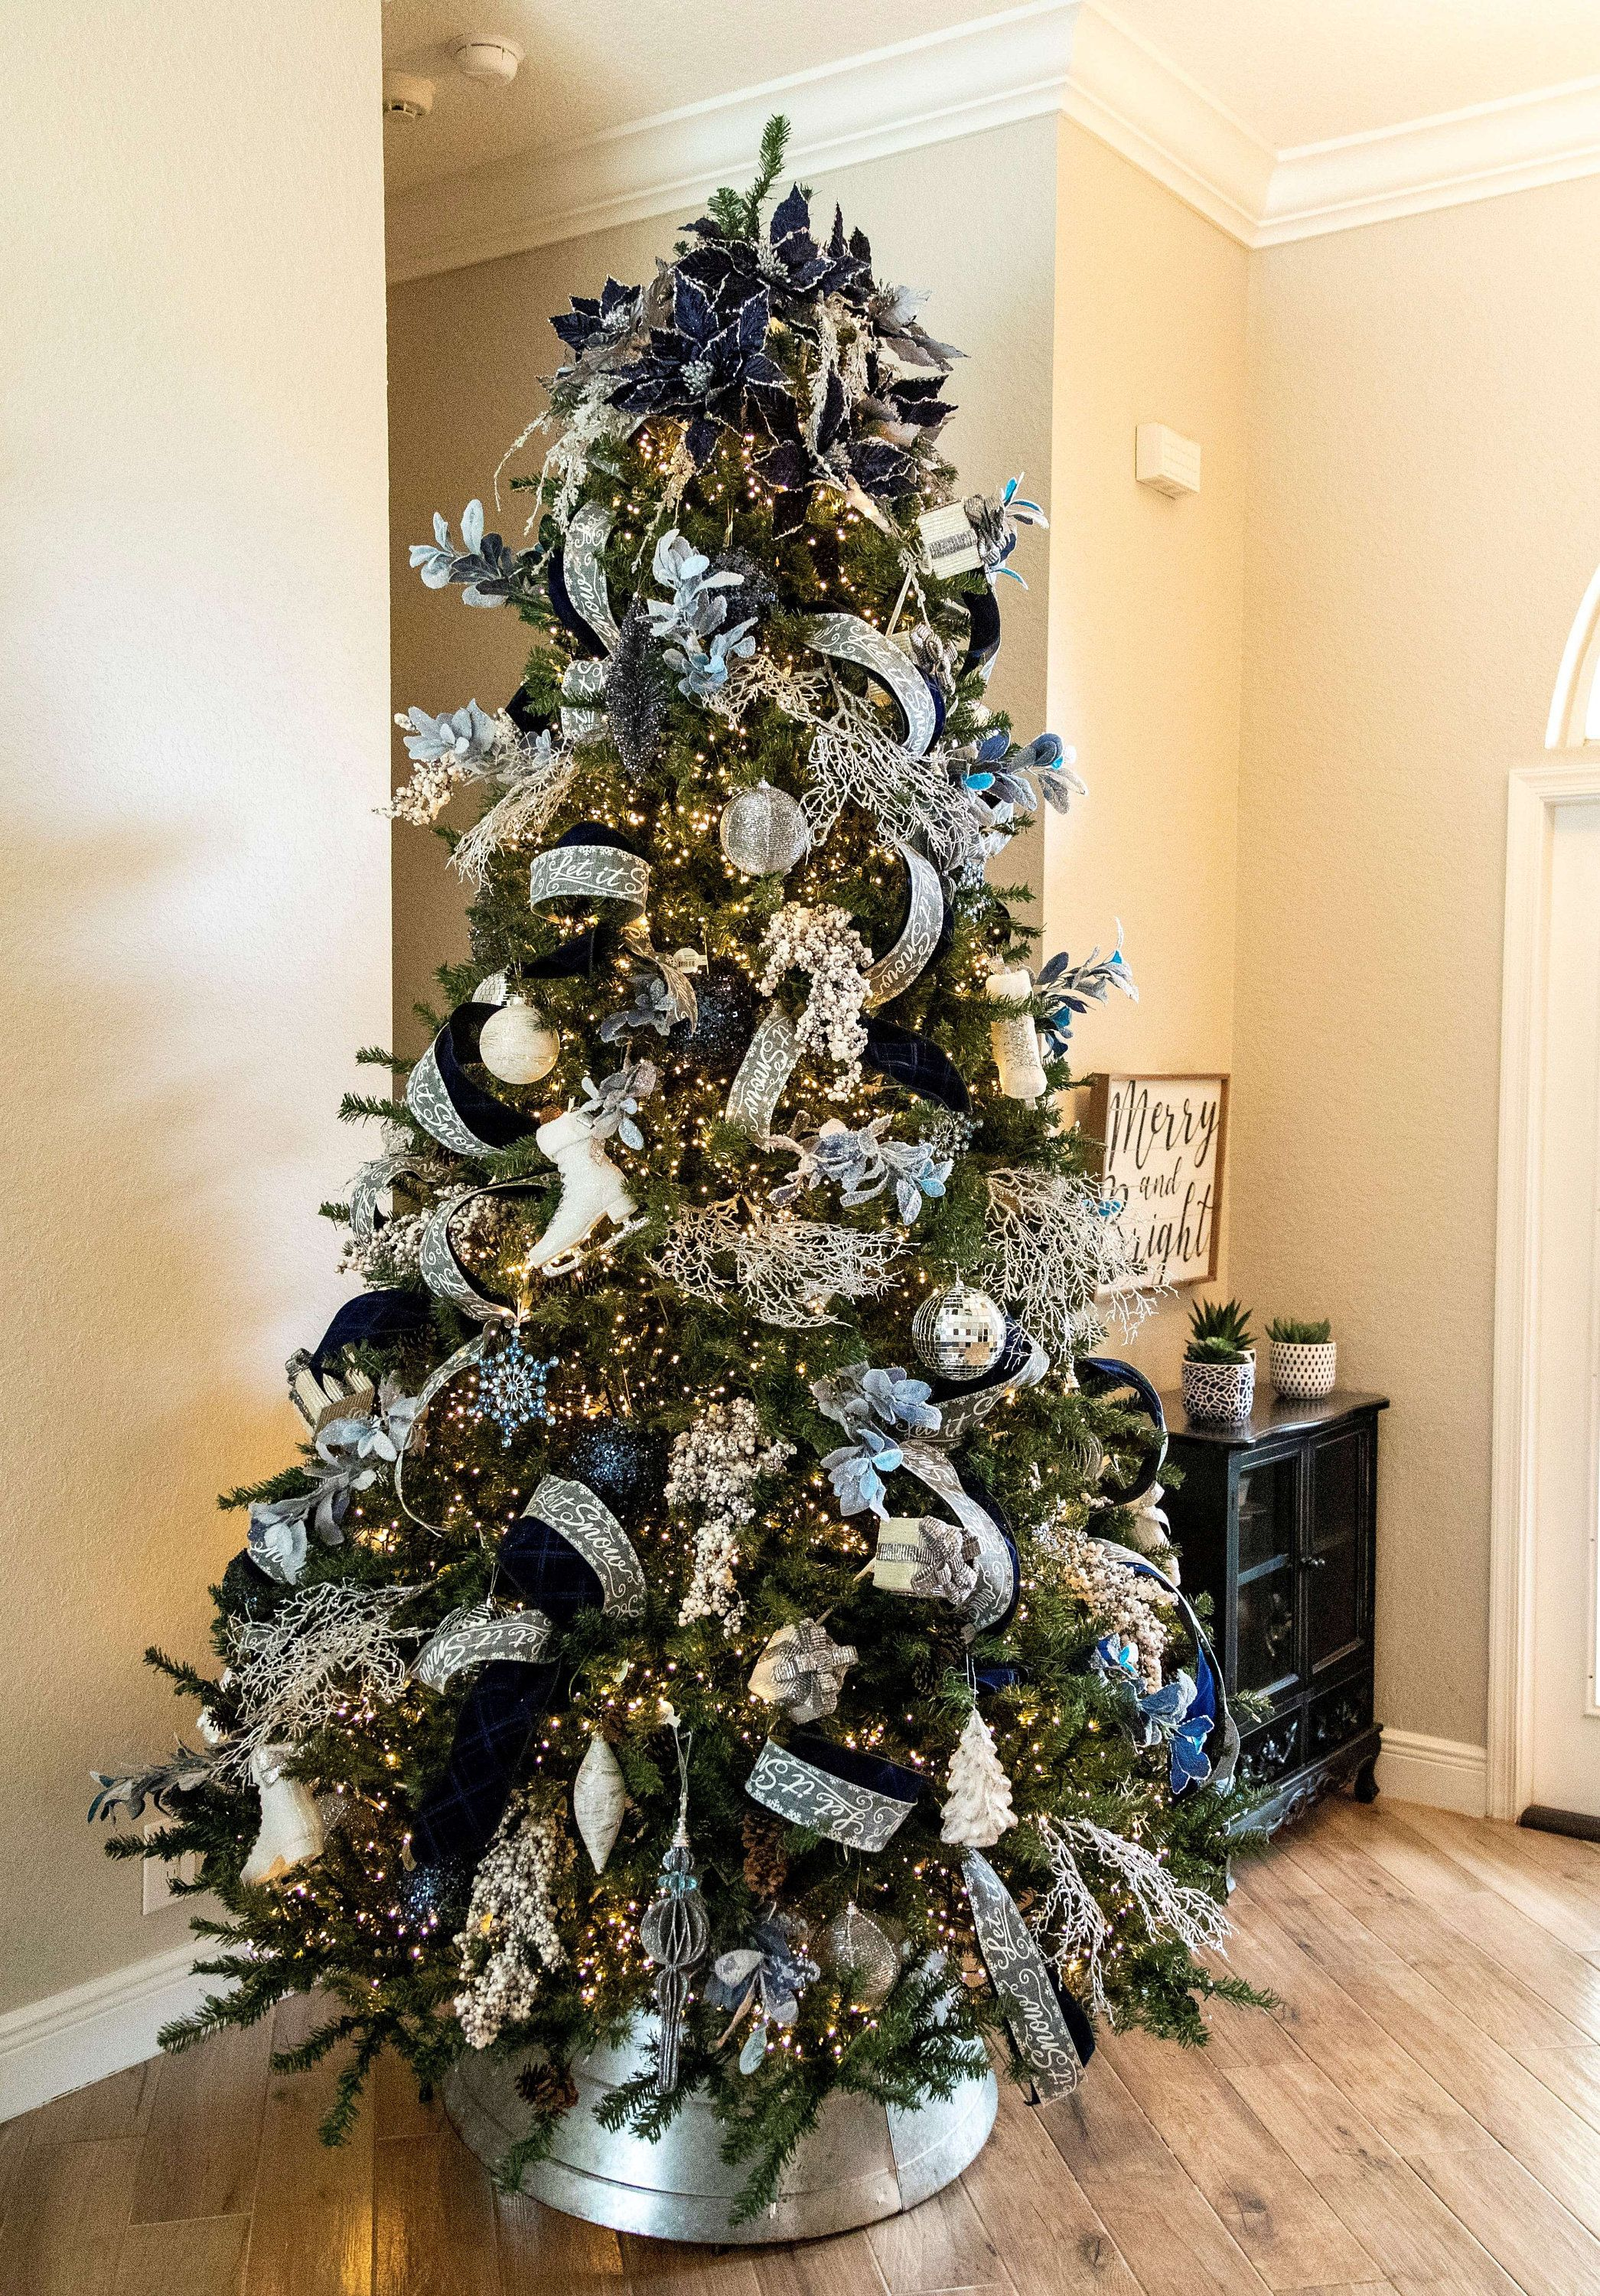 Designer Christmas Tree Package Twilight Theme Ornament Set And Ribbon Includes All Tree Decor Blue Christmas Tree Ribbon On Christmas Tree Cool Christmas Trees